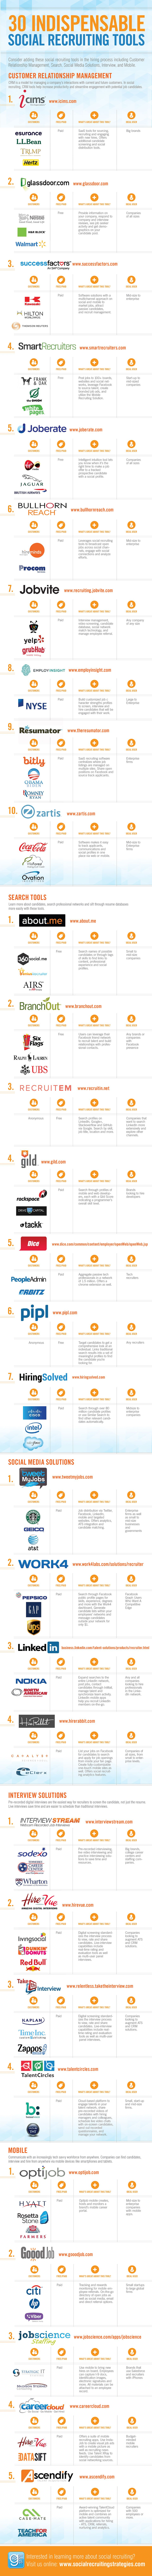 Top  Social Recruiting Tools Infographic On Http